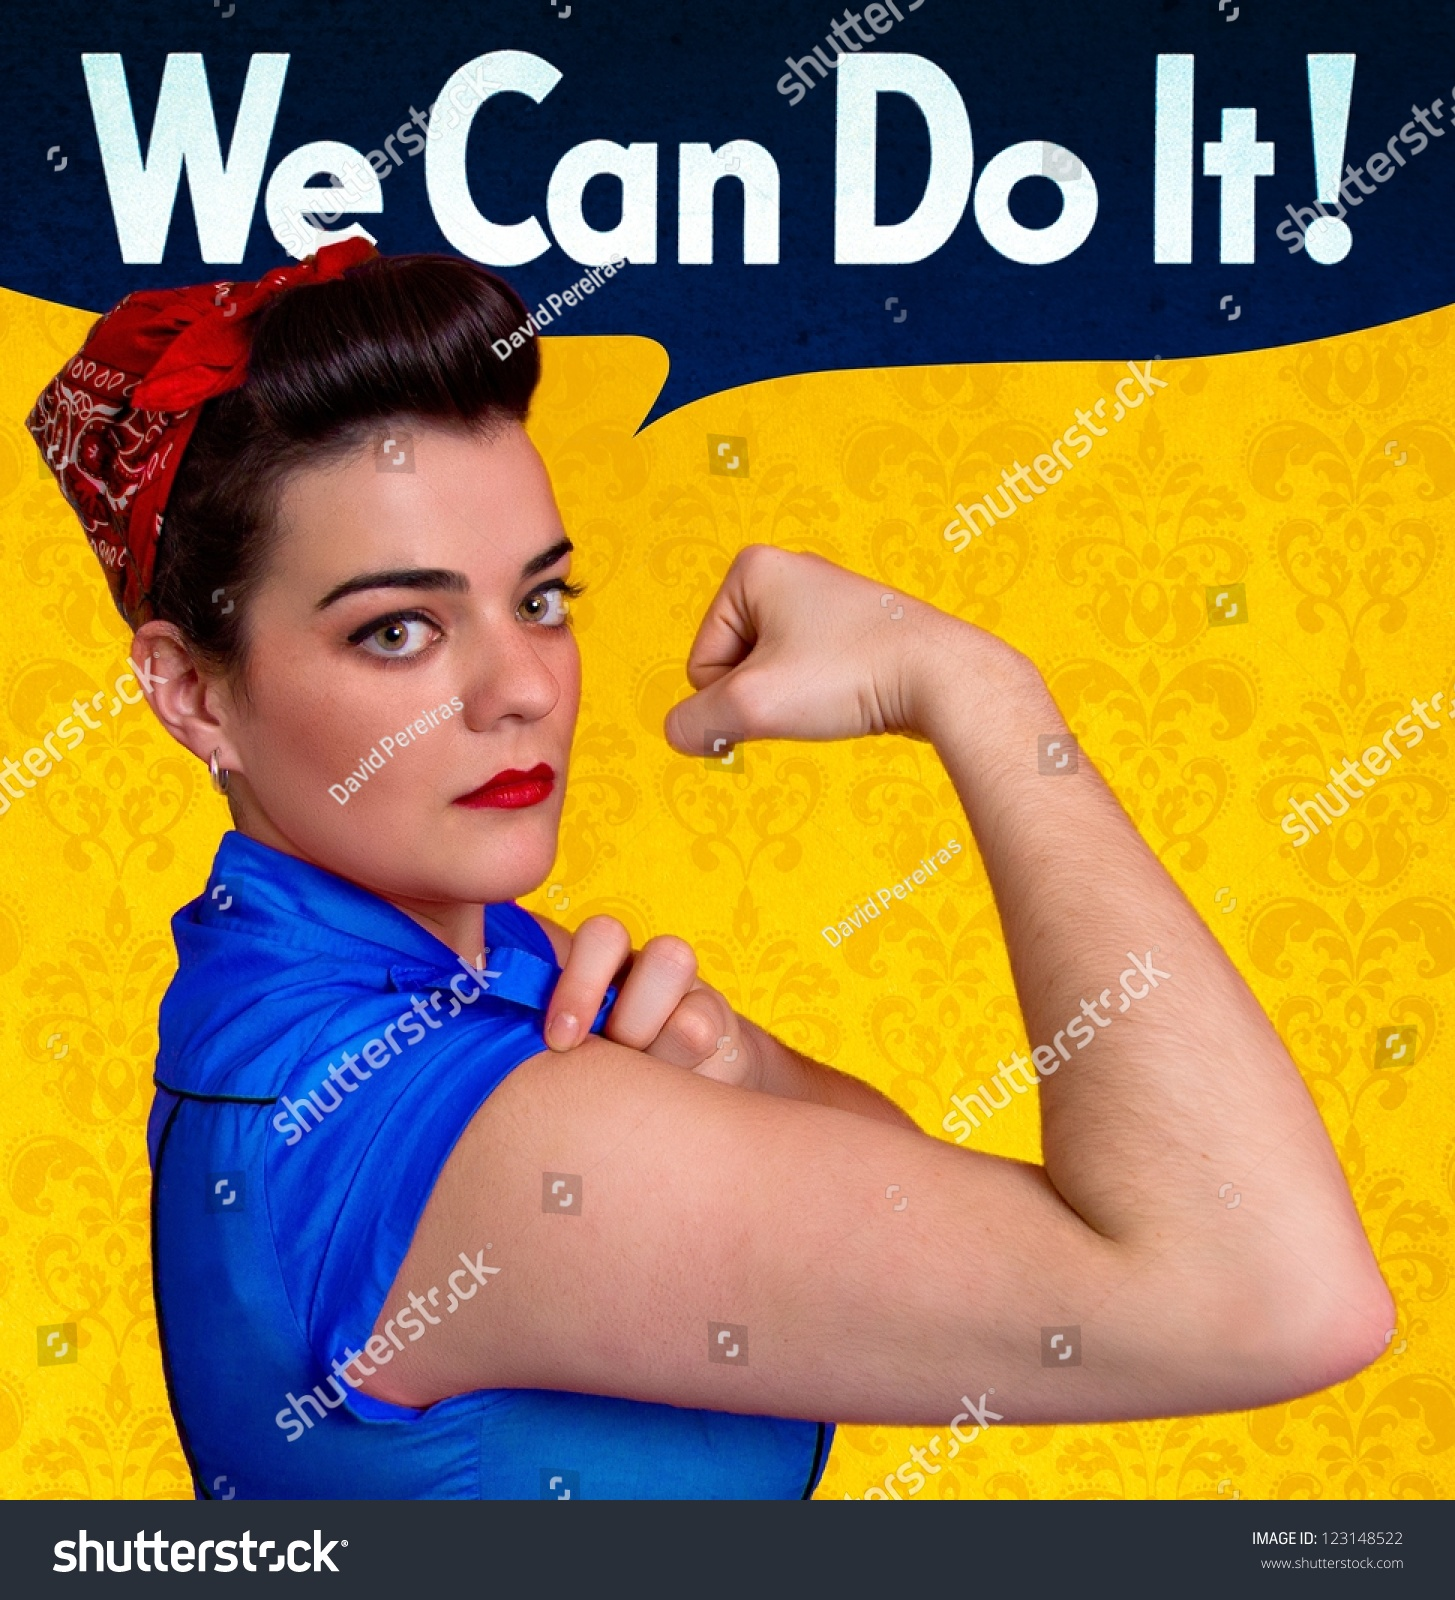 introduction to rosie the riveter history essay Mini-research paragraph: rosie the riveter collapse navigation  navigation  random acts of creativity: introduction and gallery  paragraph, which would  give us some practice using the skills with which we would write our final  research paper  i decided that my topic for this essay would be about rosie the  riveter.